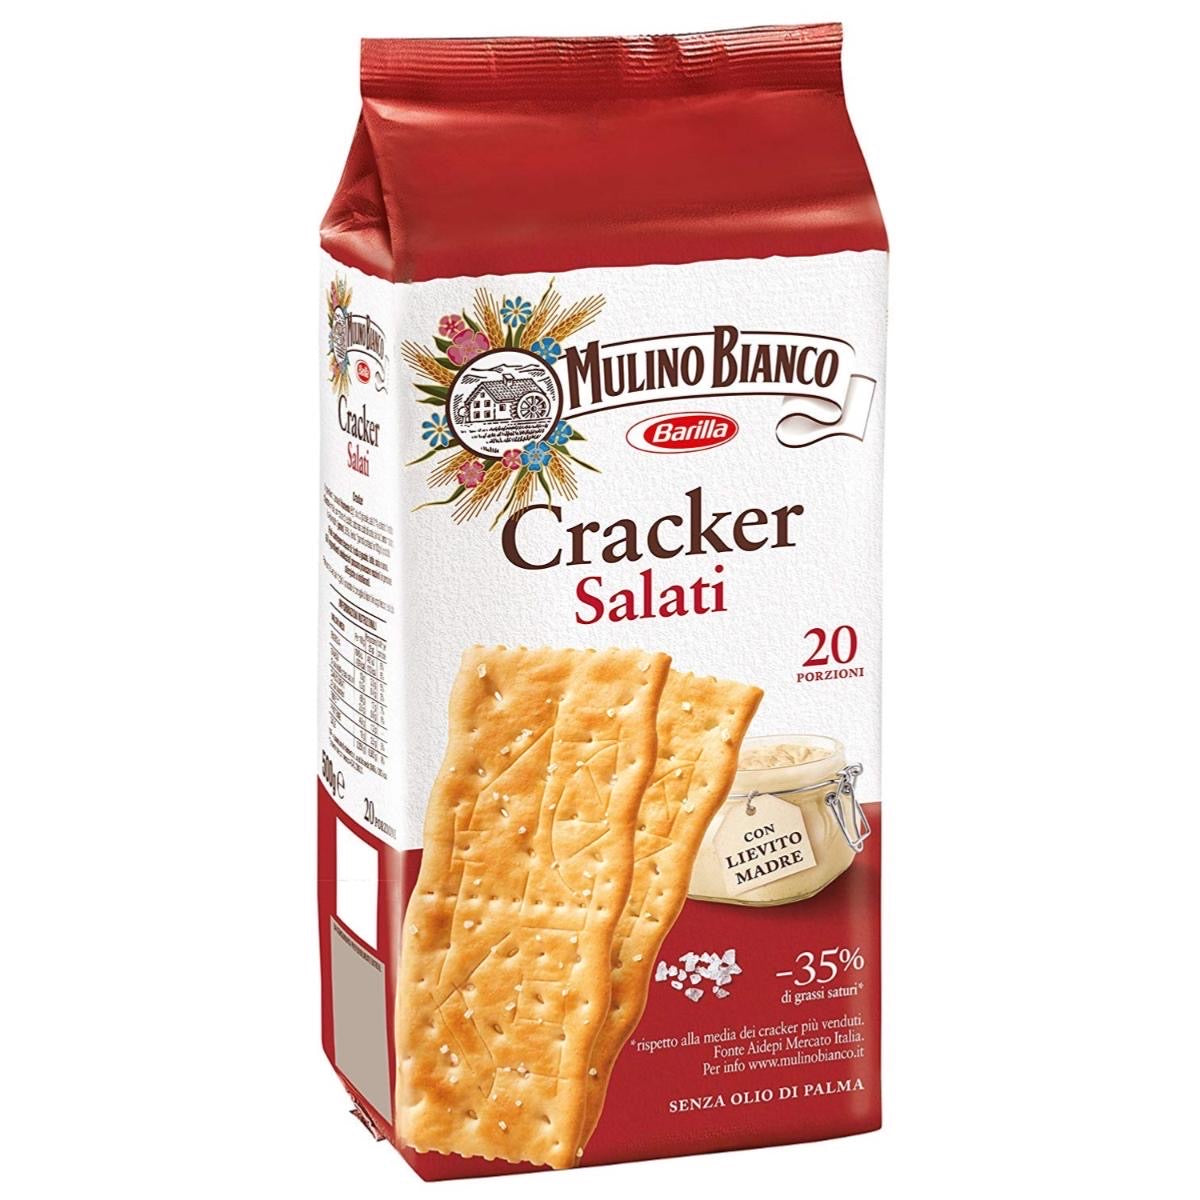 Mulino Bianco Salted crackers 20 portions